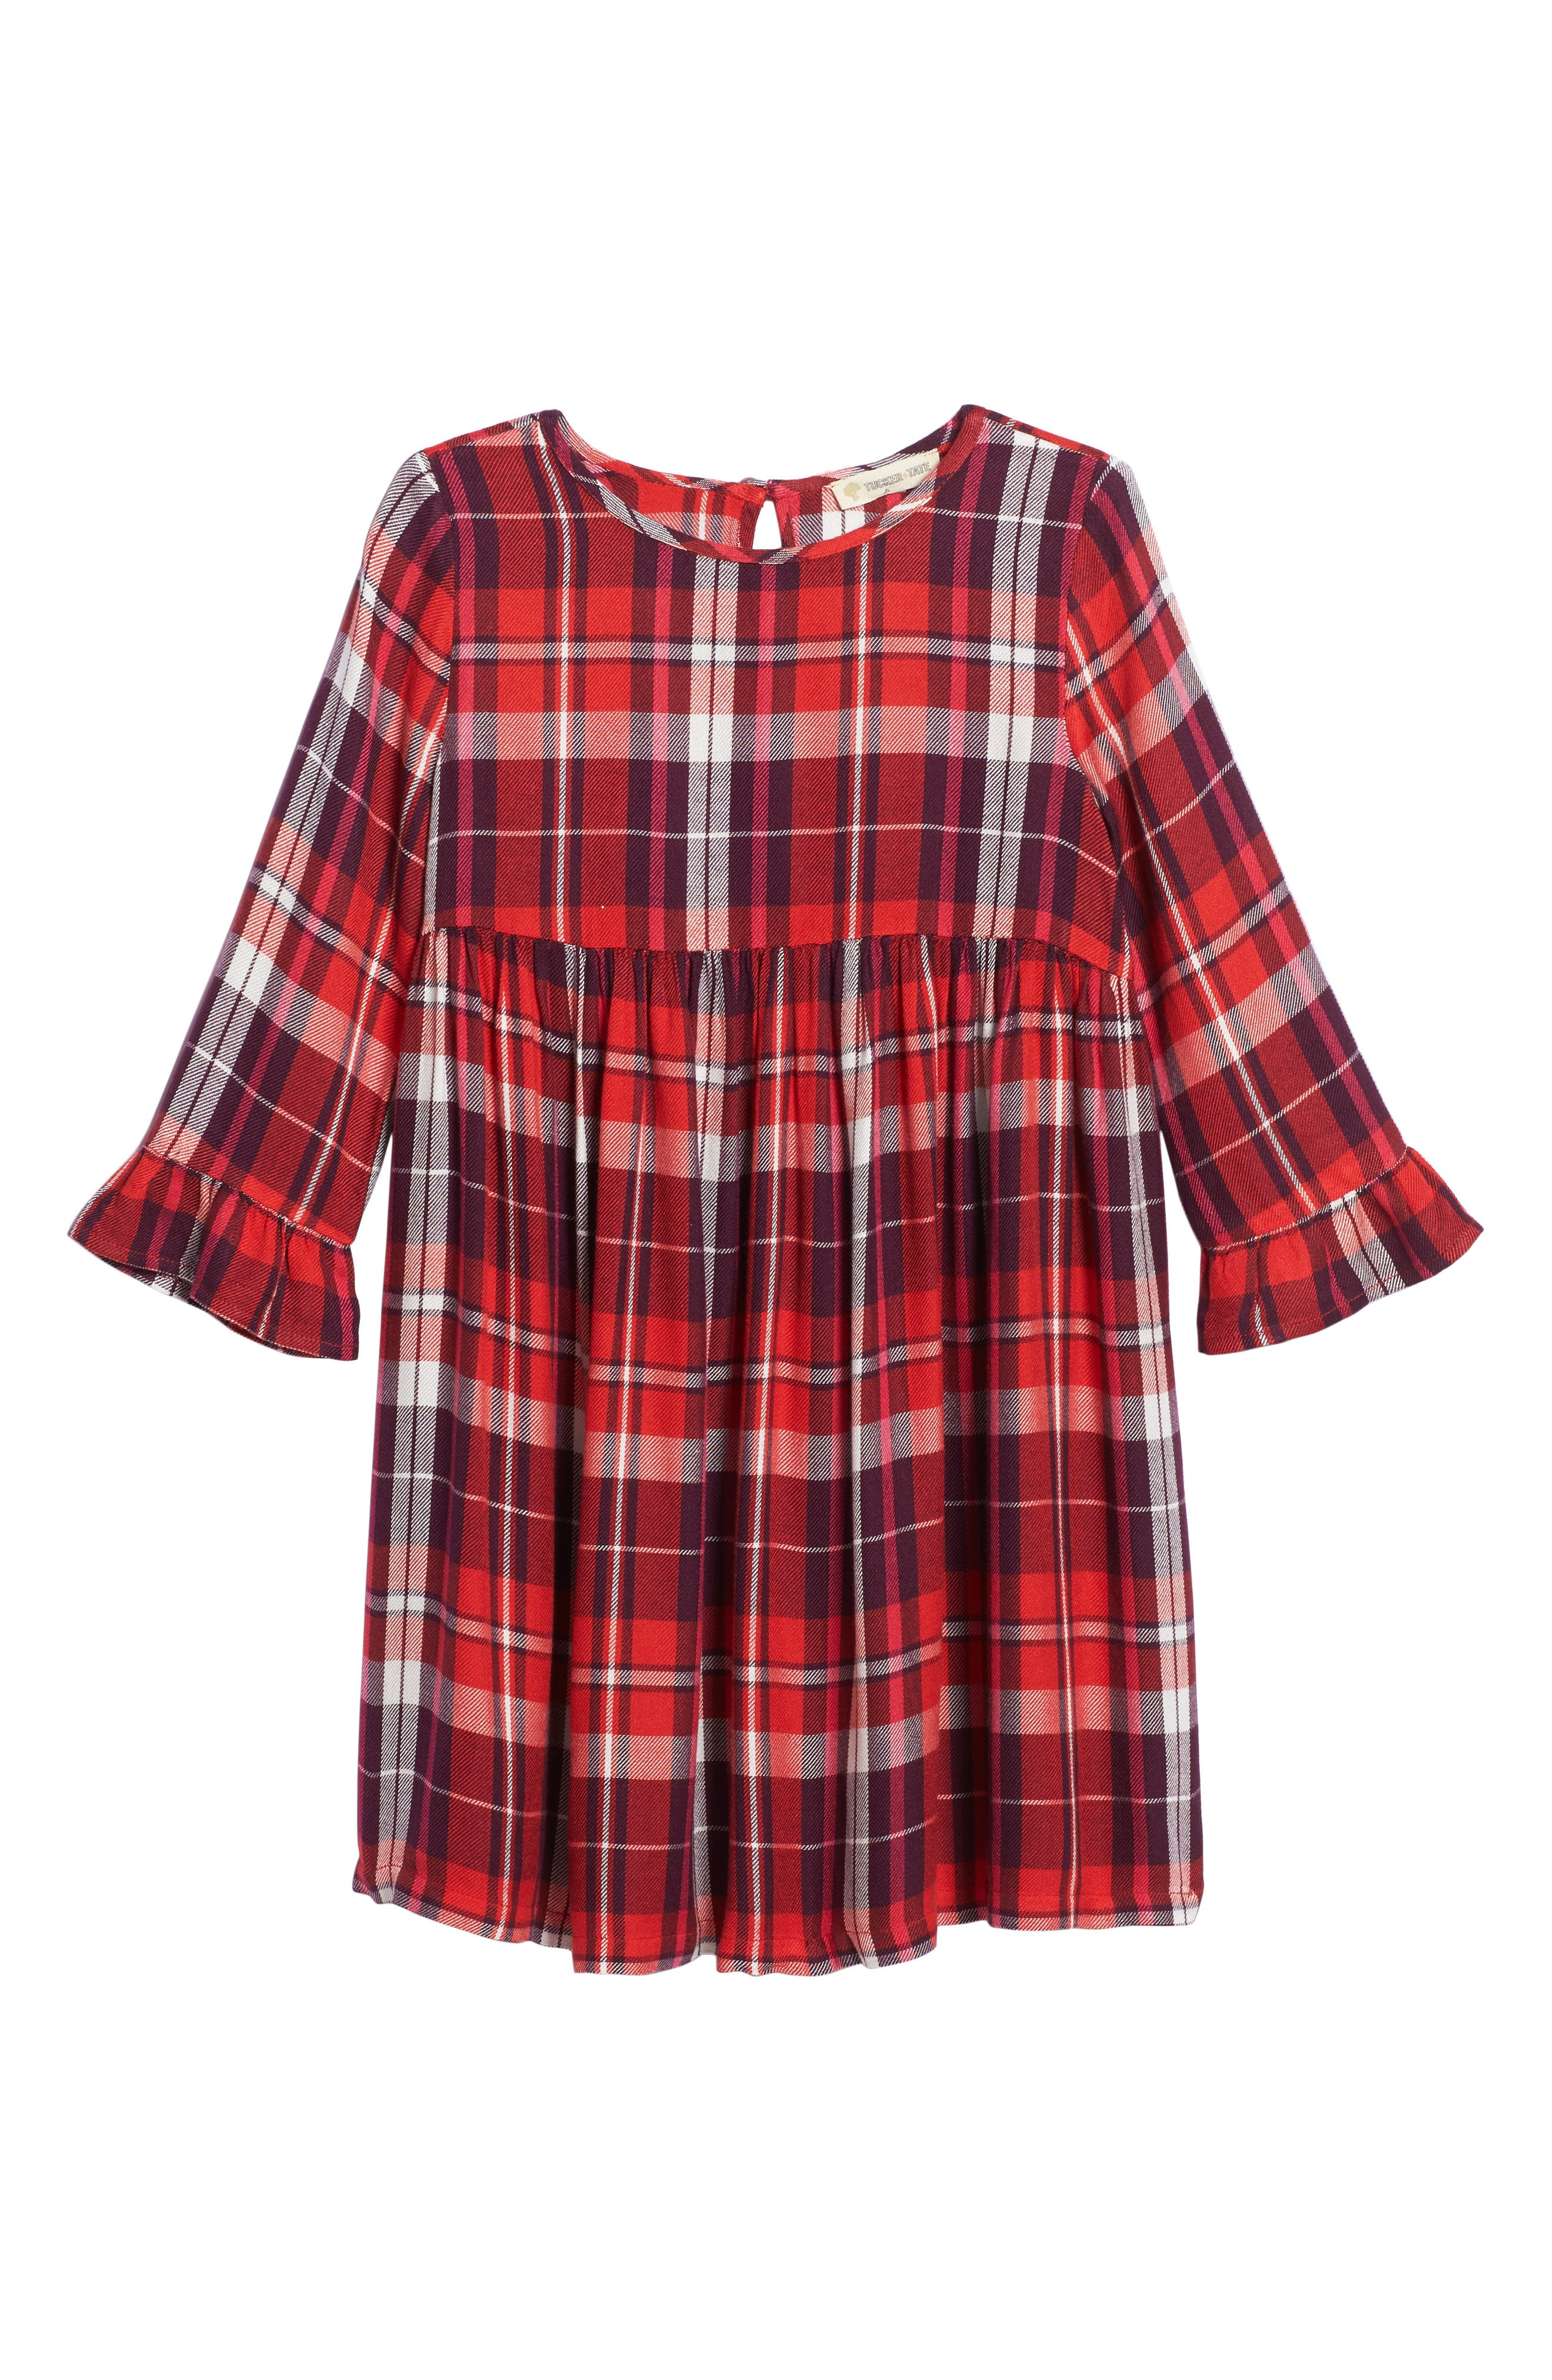 Plaid Flutter Sleeve Dress,                         Main,                         color, Red Bittersweet Winter Plaid